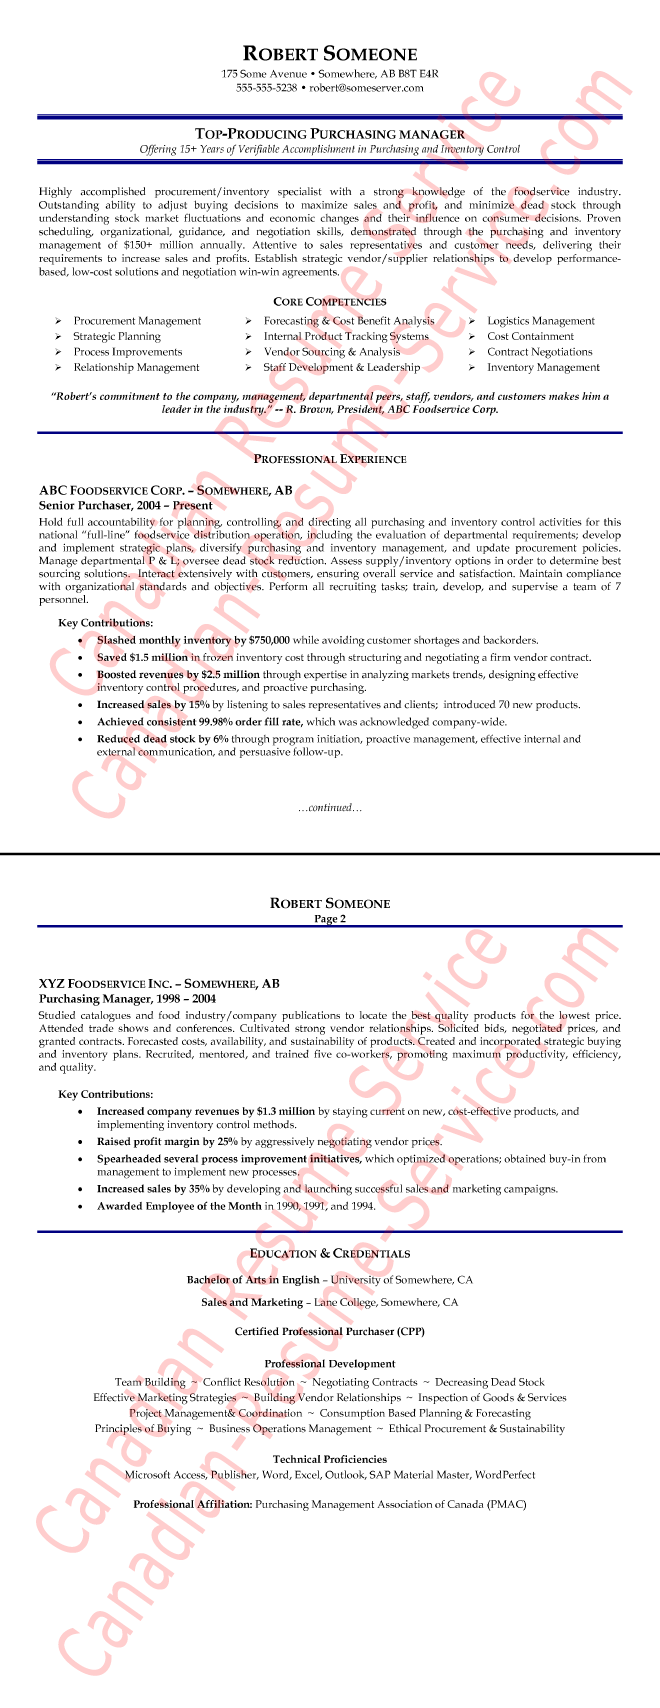 Purchasing Manager Resume Example U2013 Procurement Executive Sample  Supply Chain Resume Sample